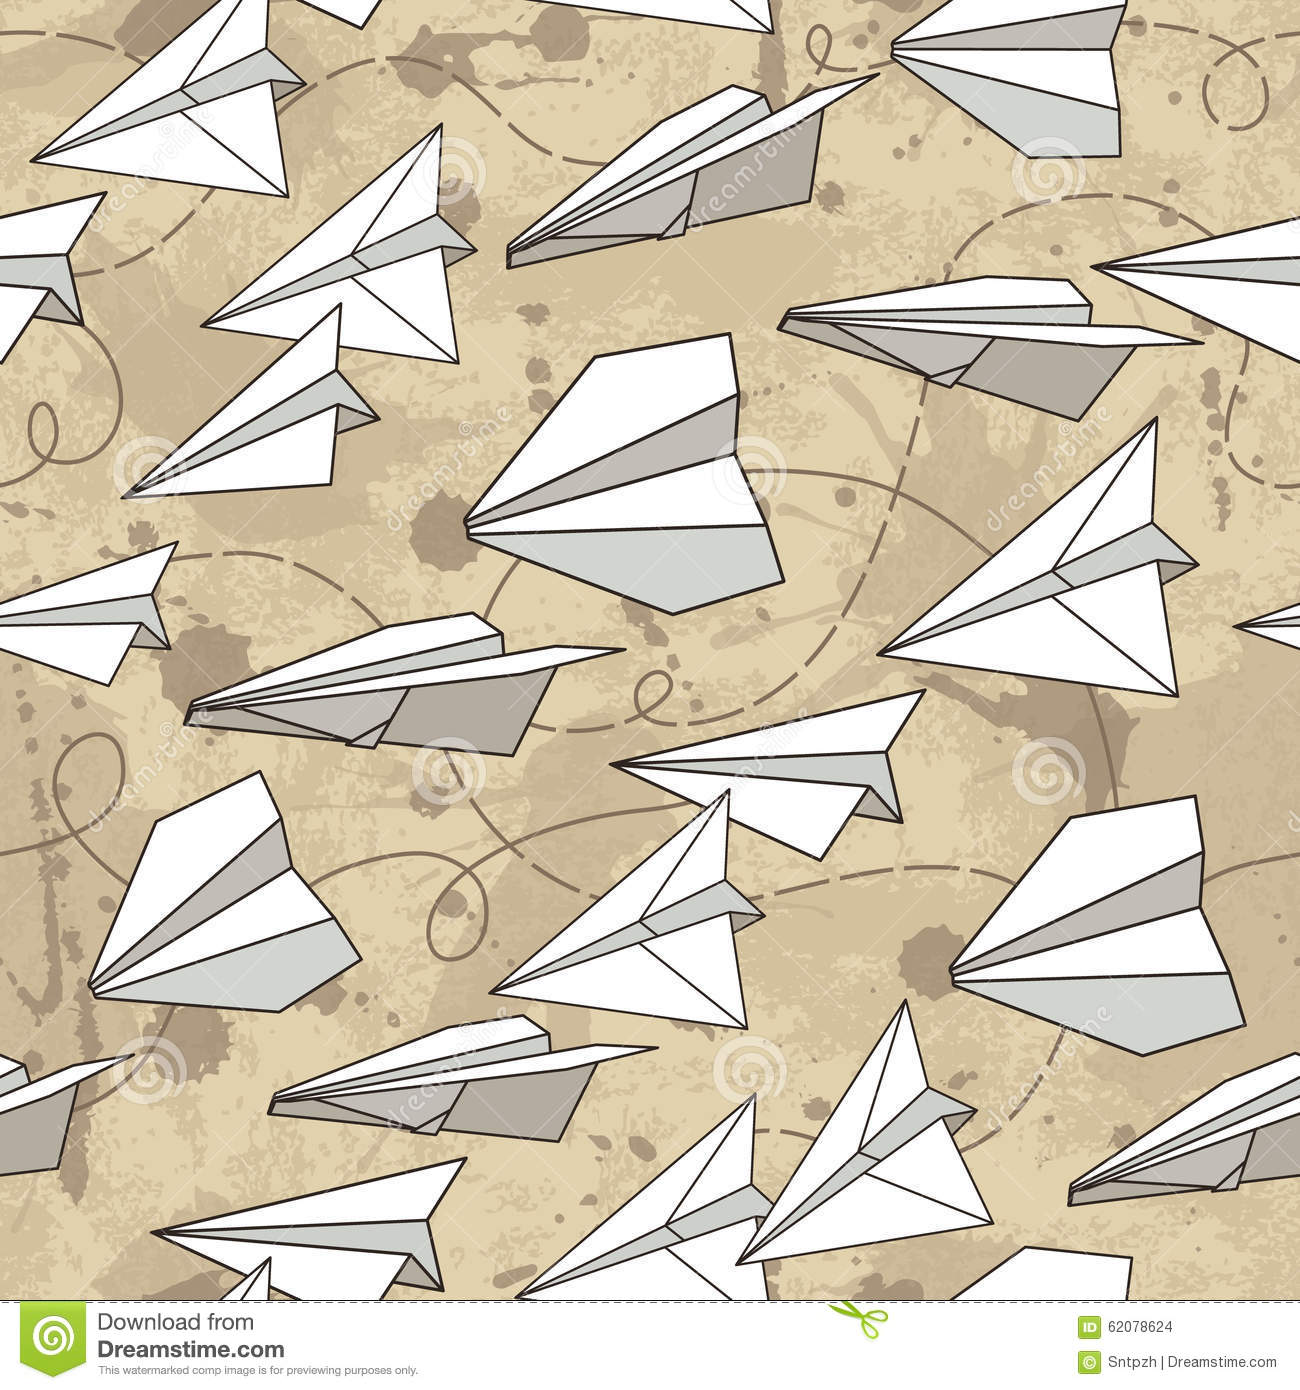 Seamless texture with paper planes.